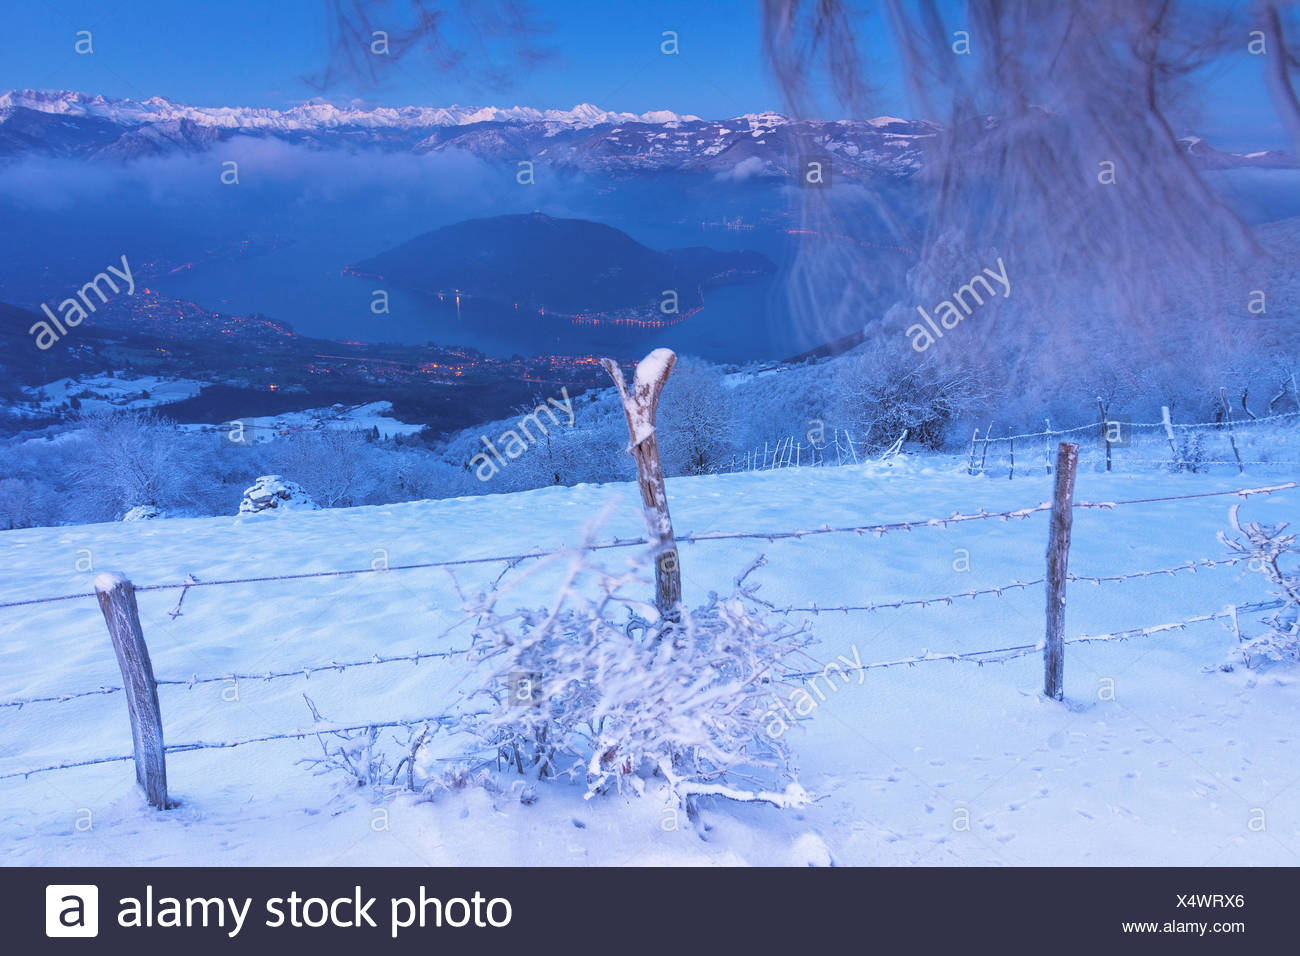 Snowy lake, Iseo lake, Brescia province, Lombardy district, Italy, Europe. - Stock Image